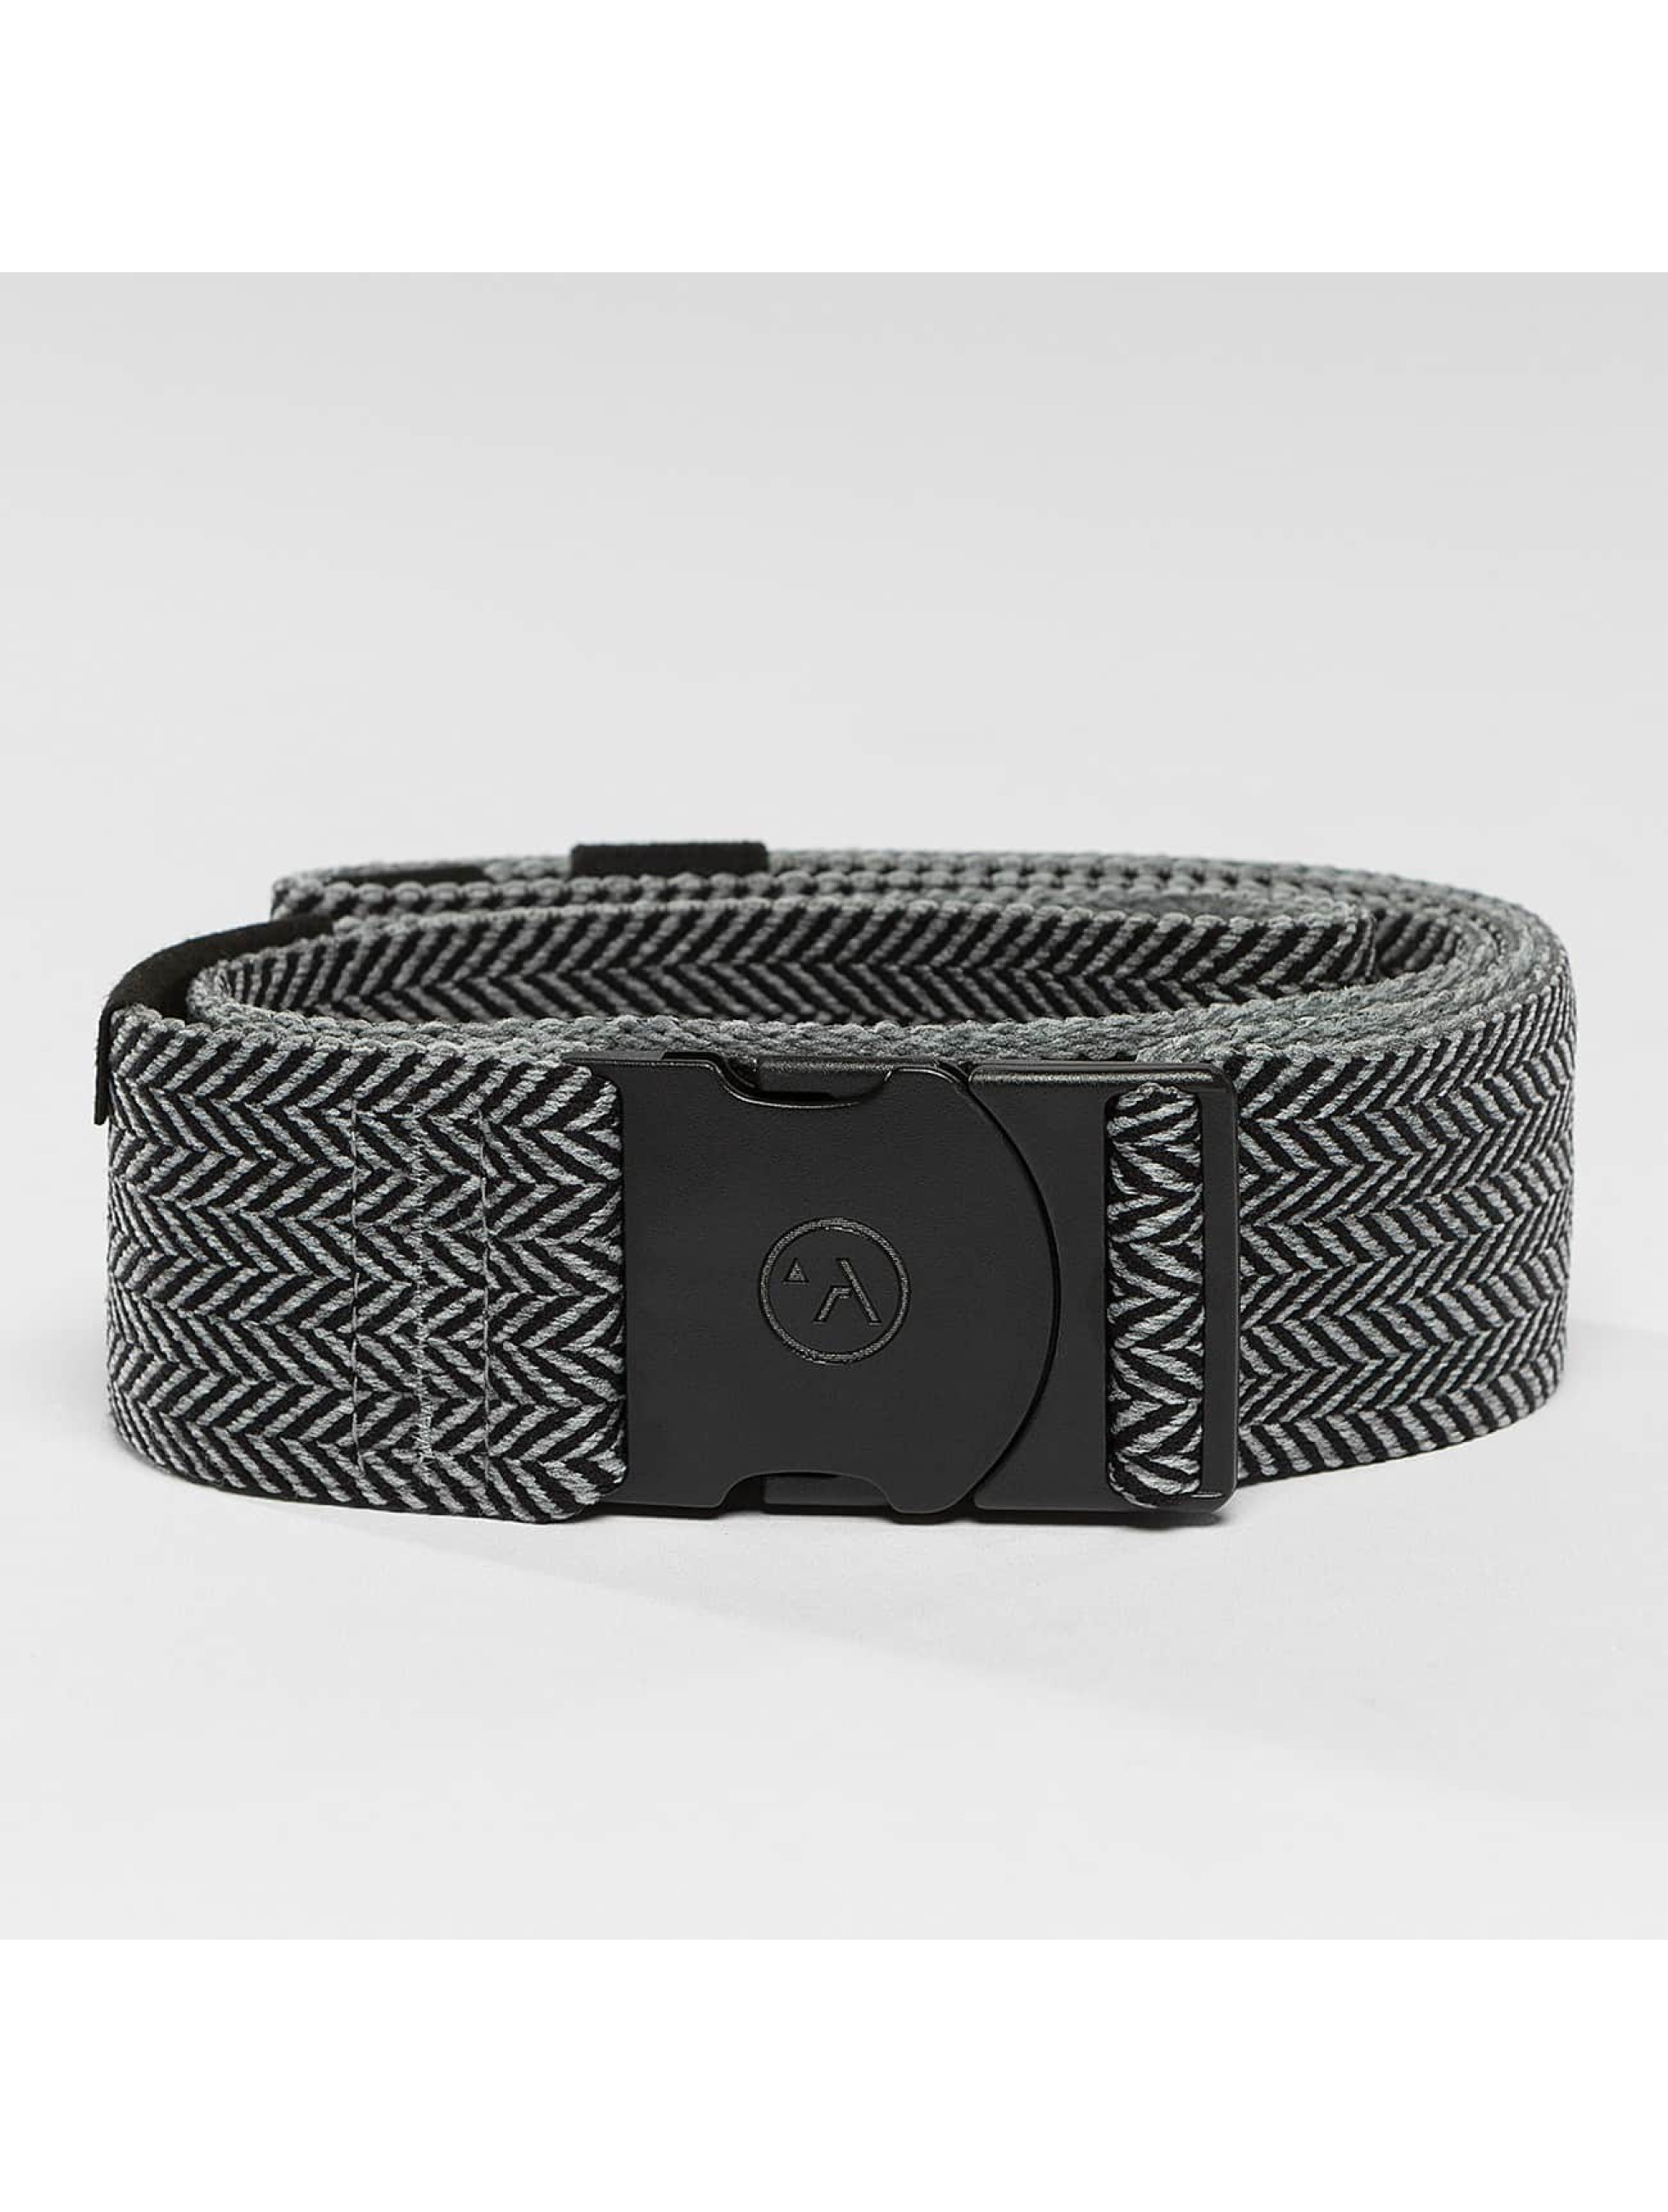 ARCADE Ceinture Reserve Collection Hemingway noir